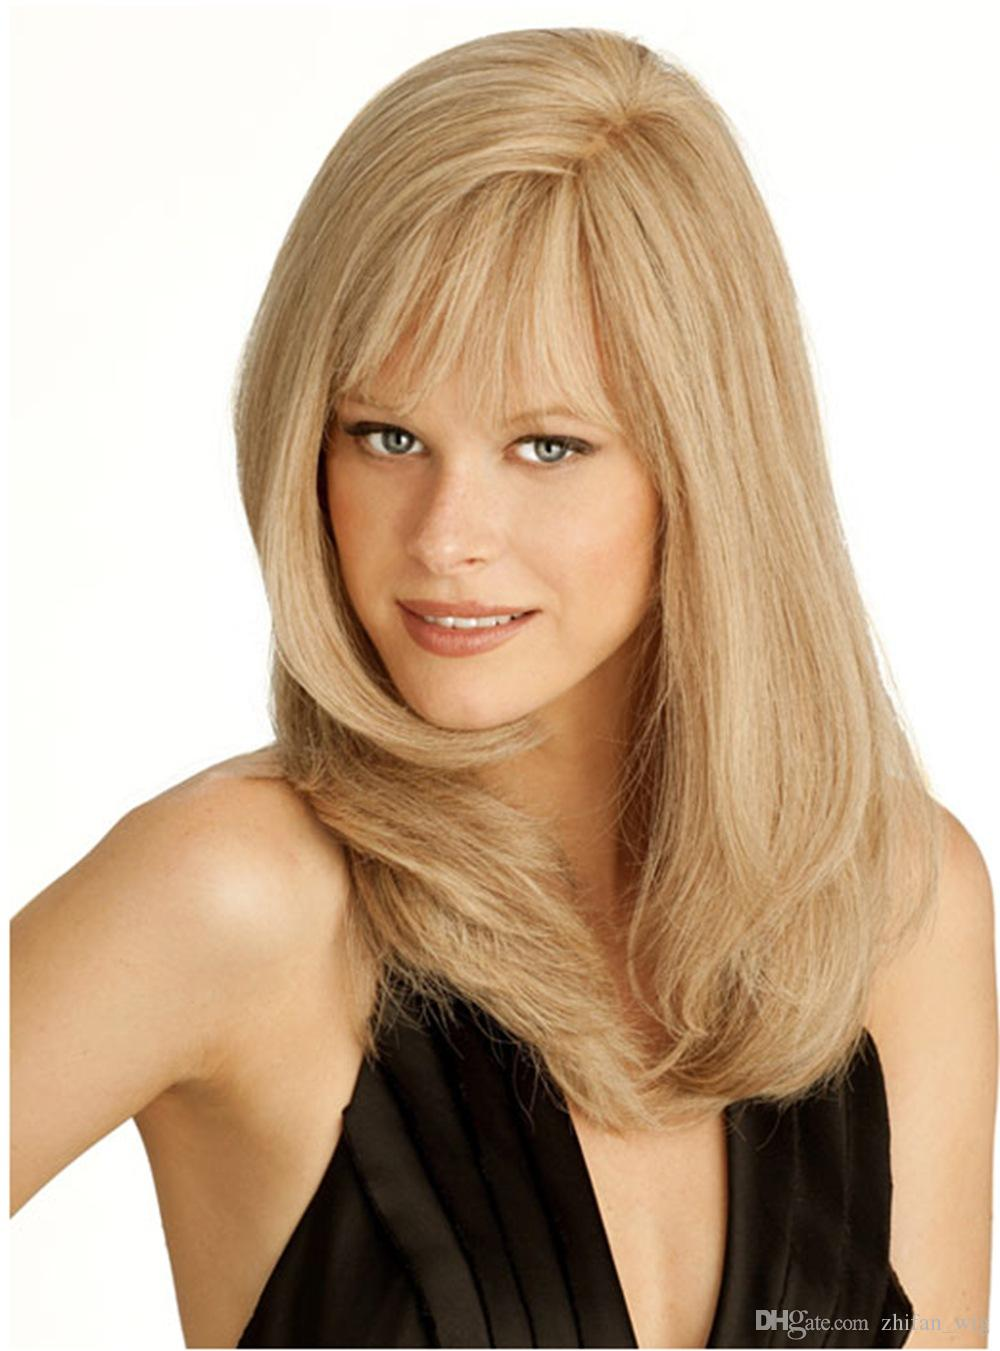 Z&F Blonde Wig Medium Wigs Bang Curly Wig 16 Inch Wave Natural Fashion US Afro Style